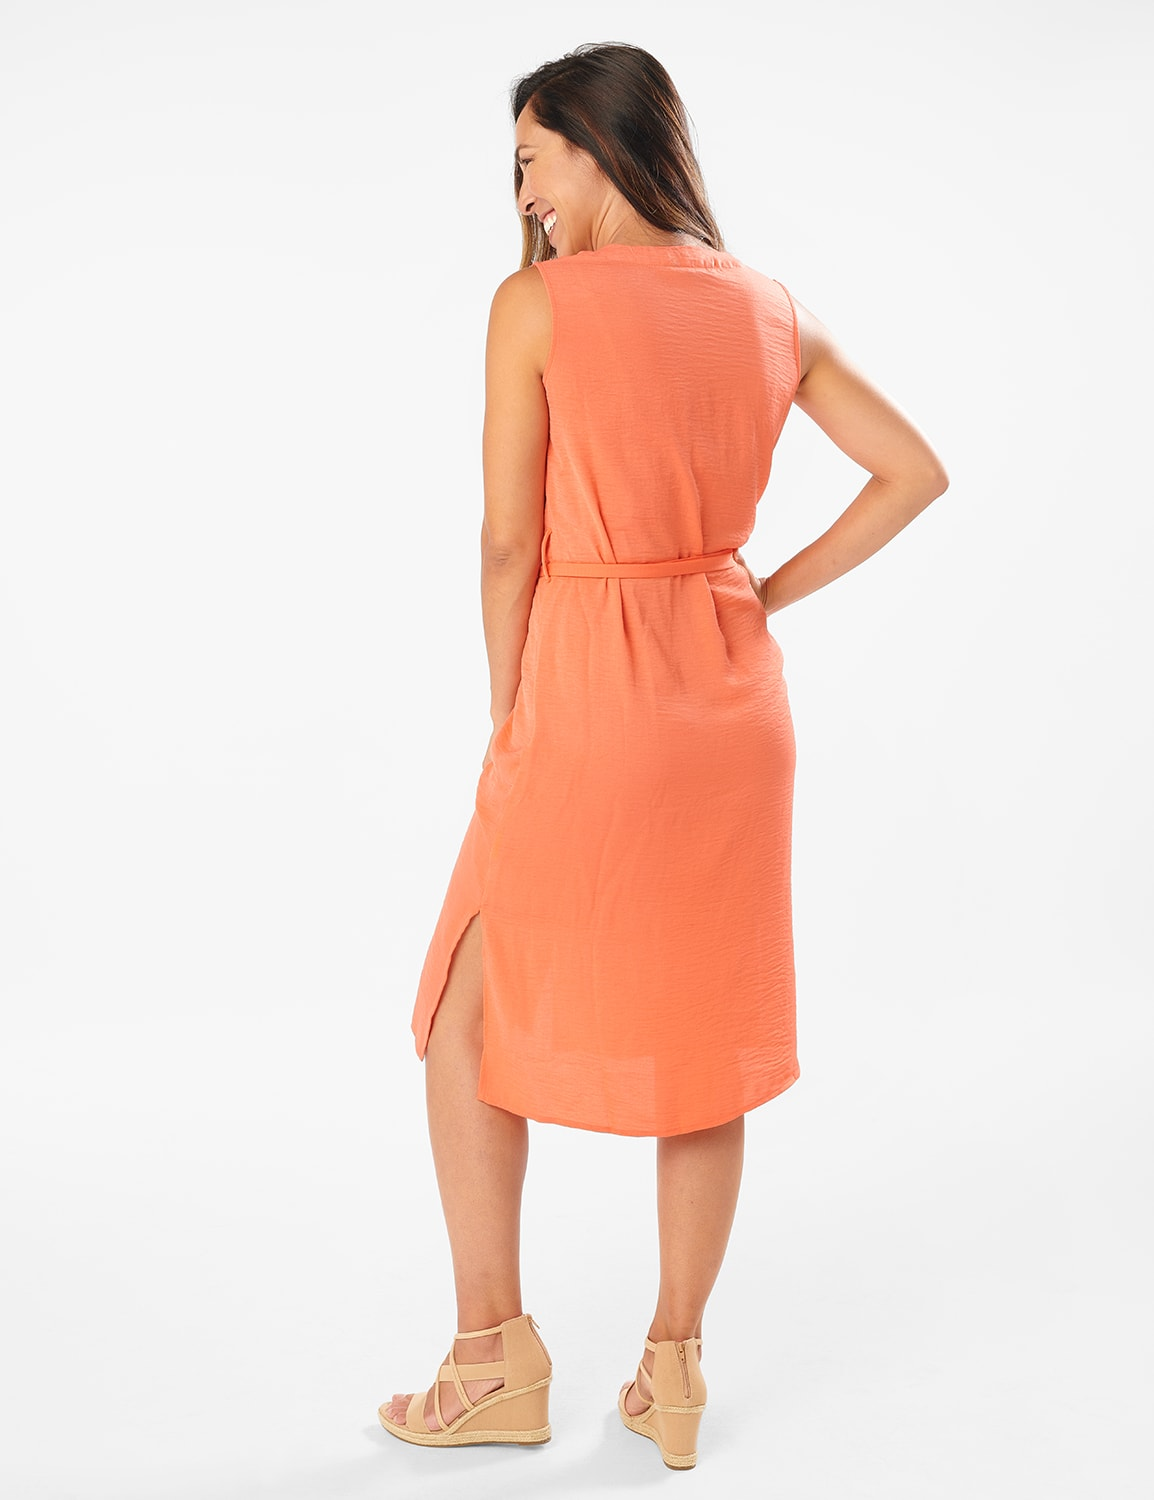 Button Front  Dress - Ember Glow - Front